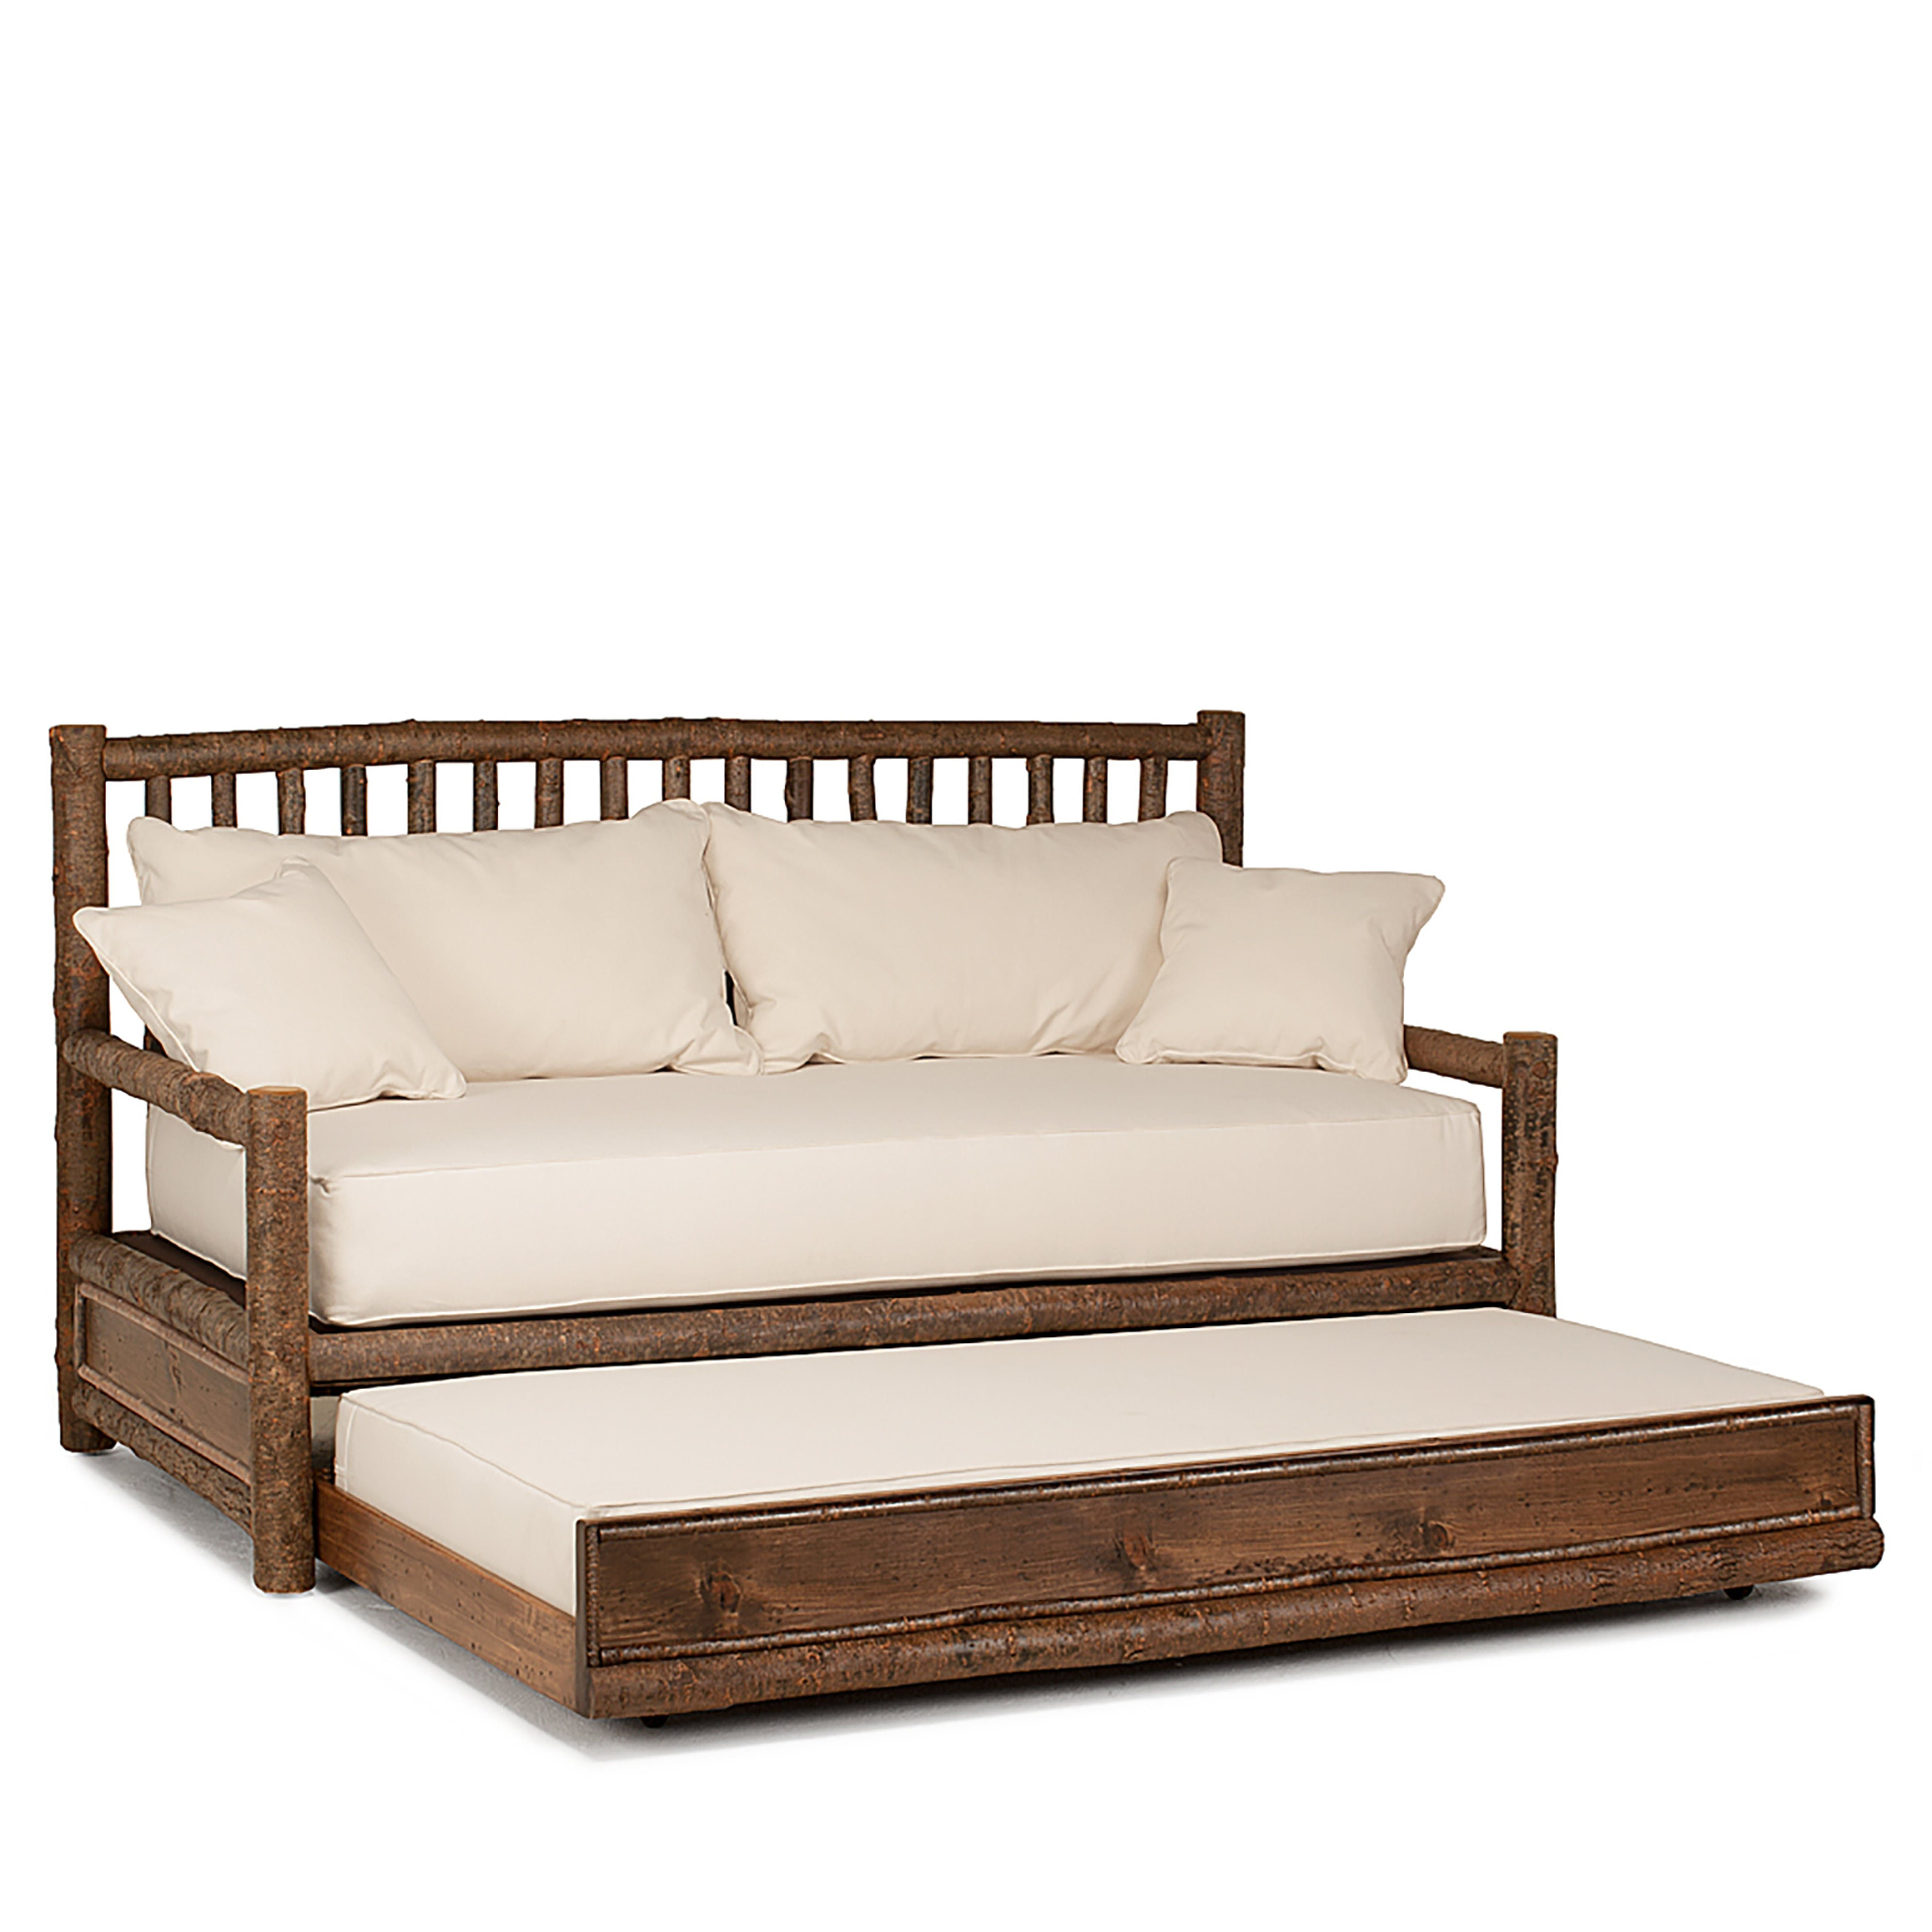 Rustic Trundle Daybed 4036 Rustic Bedroom Furniture Daybed